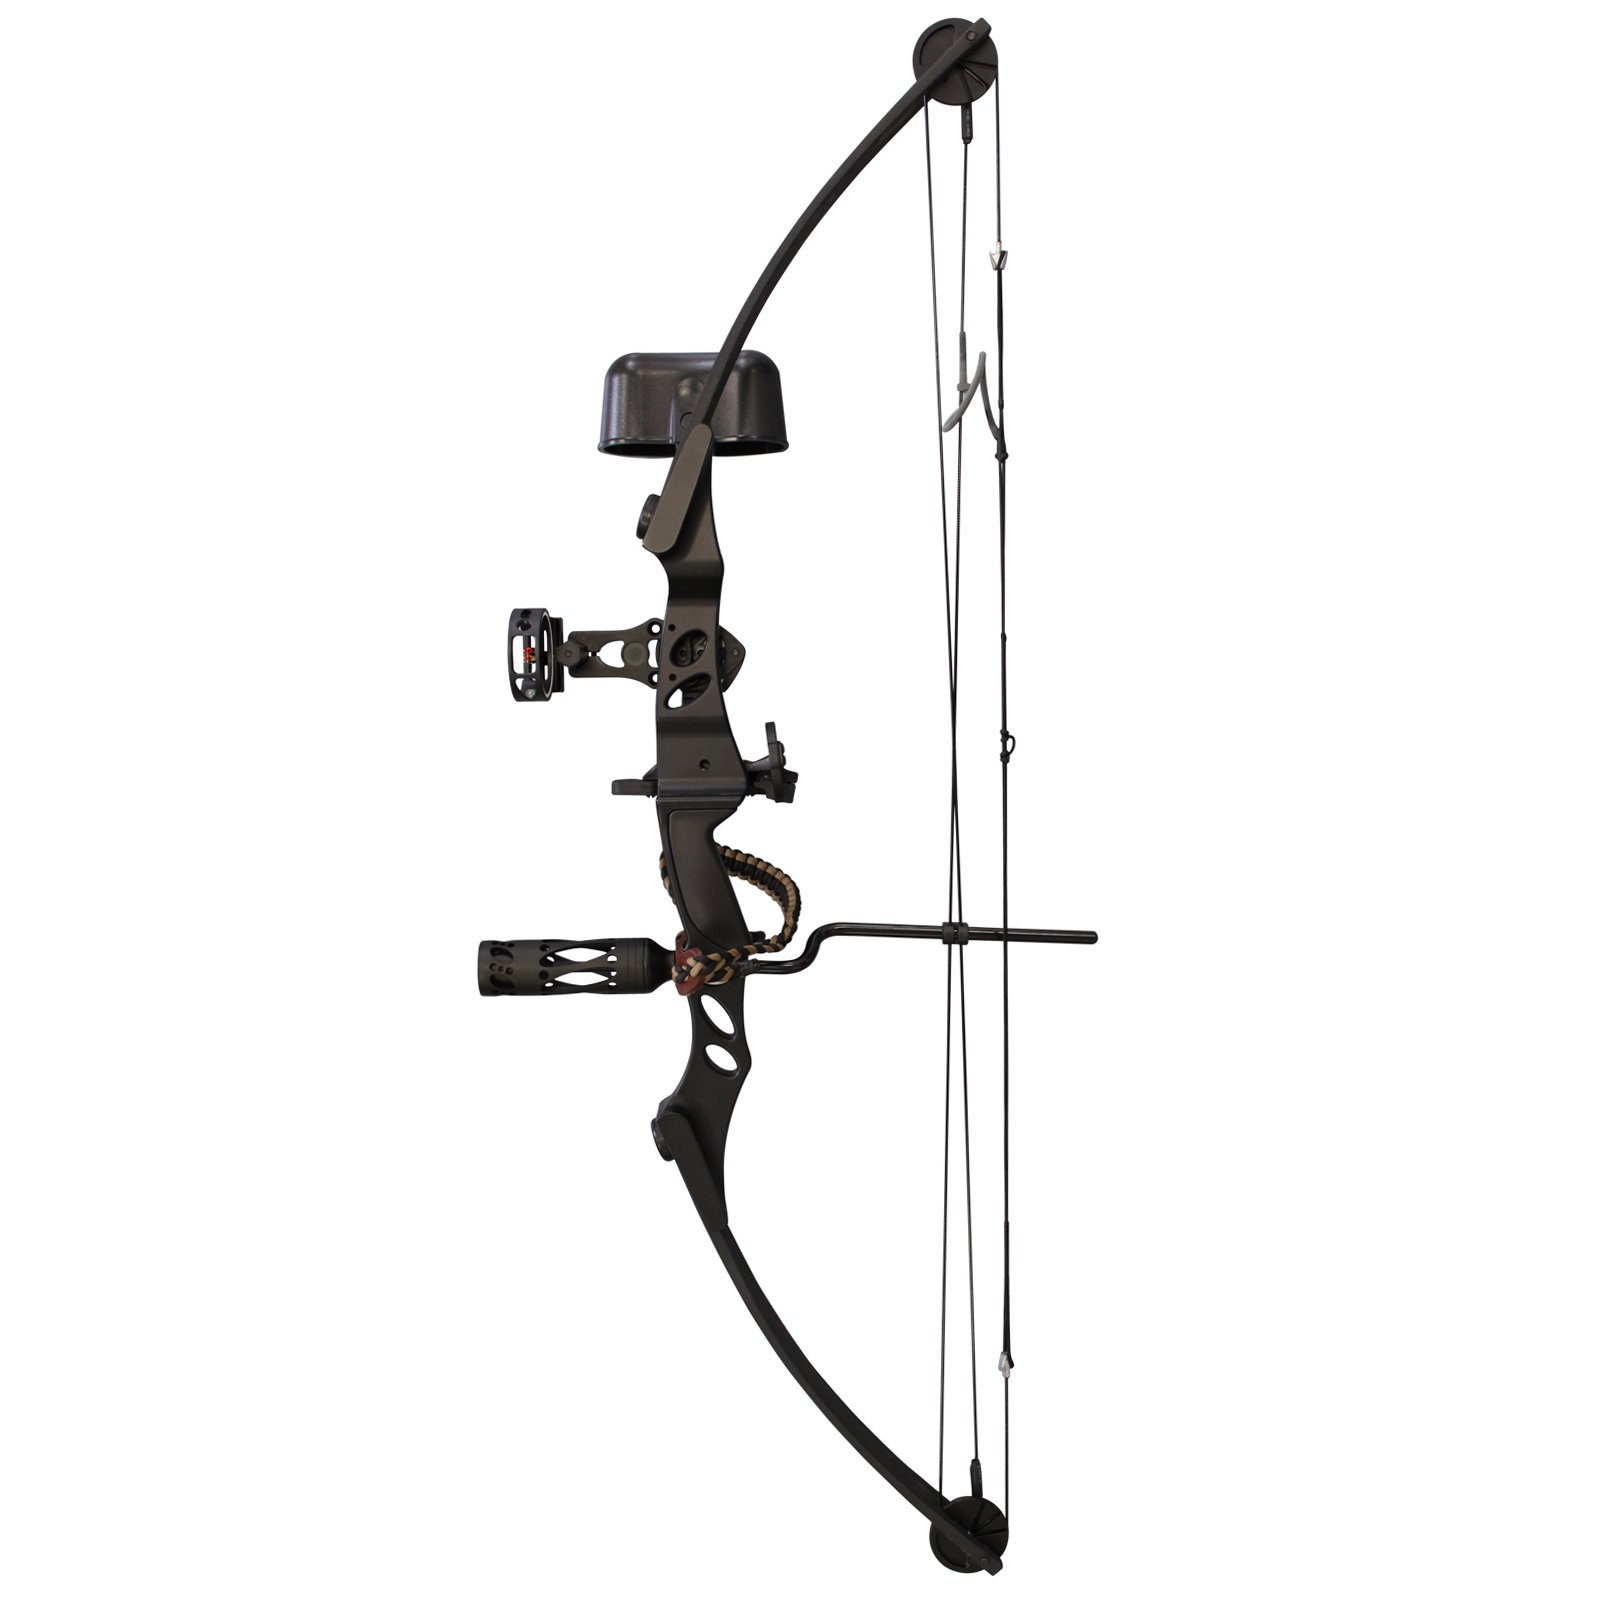 SAS Siege 55 lb Compound Bow w/ 5-Spot Paper Target (Black w/ Accessories)